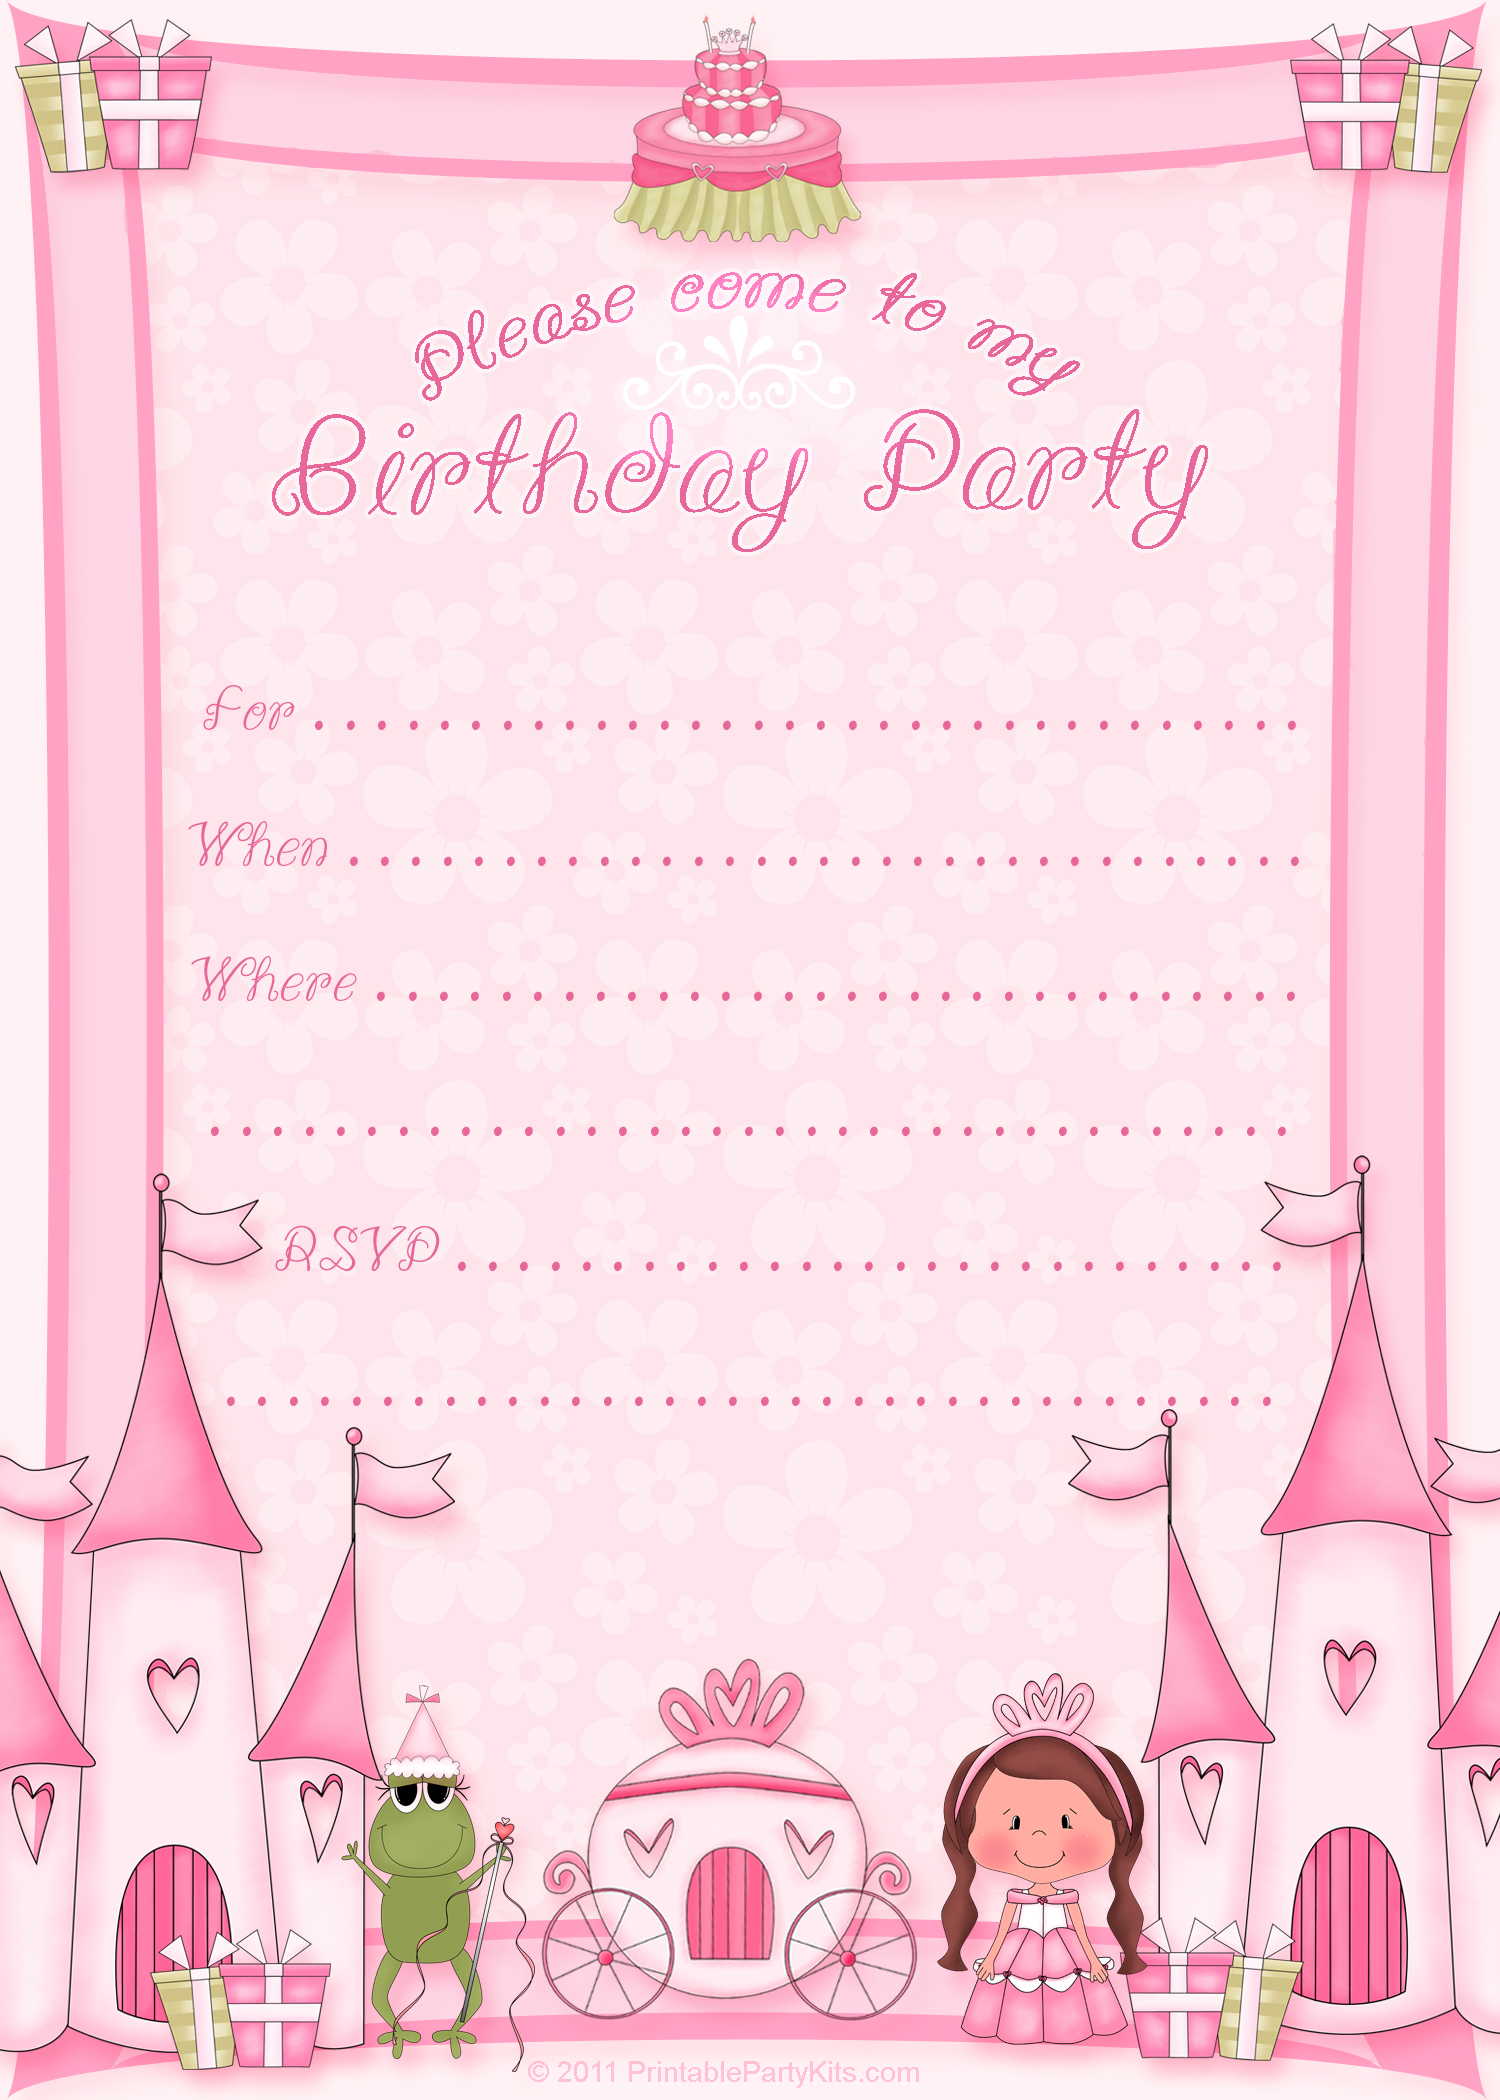 13th birthday party invitations templates free ; Disney-Princess-Birthday-Invitation-Templates-Free-is-attractive-ideas-which-can-be-applied-into-your-birthday-Invitation-1